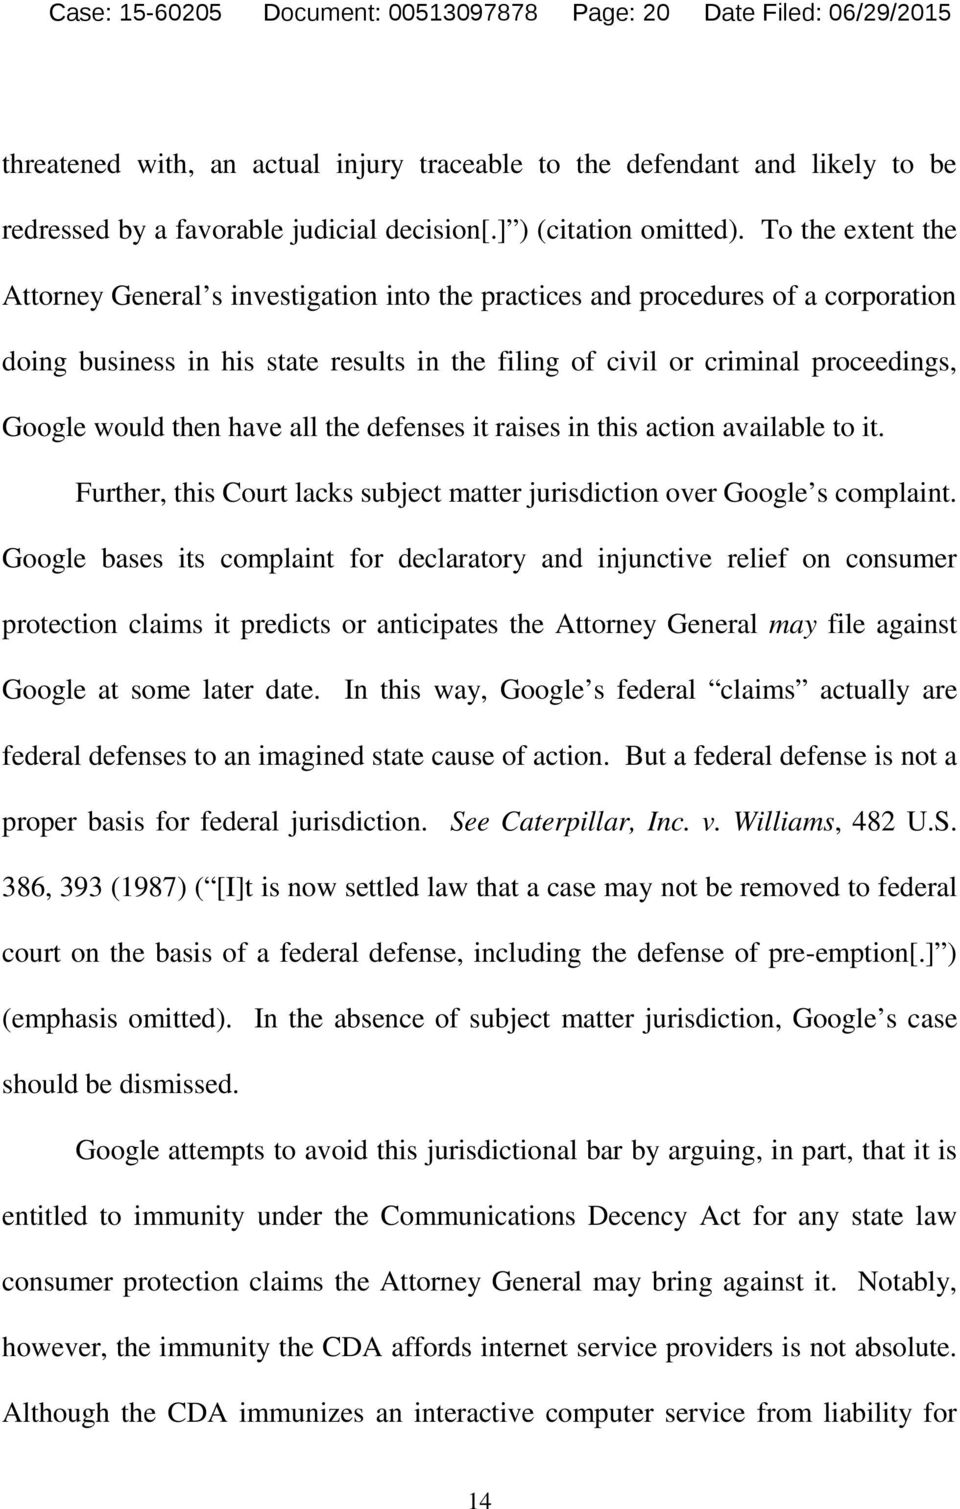 To the extent the Attorney General s investigation into the practices and procedures of a corporation doing business in his state results in the filing of civil or criminal proceedings, Google would